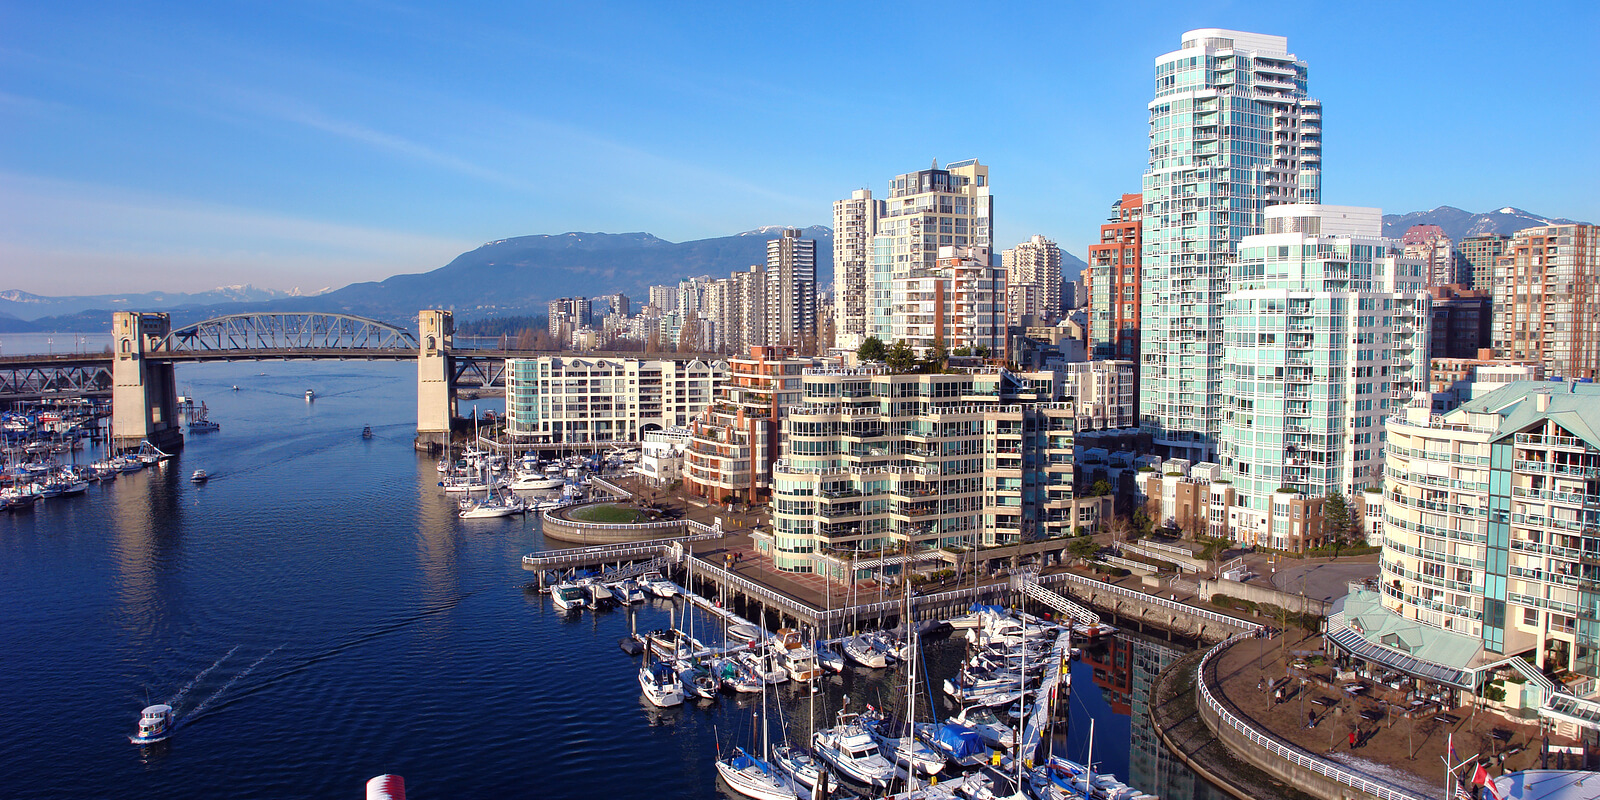 Vancouver Employment Trends. The employment trends for jobs in Vancouver closely resemble the trends of Portland, especially considering most people commute there for work. The tech industry has recently made its way up from Silicon Valley, and more jobs in .